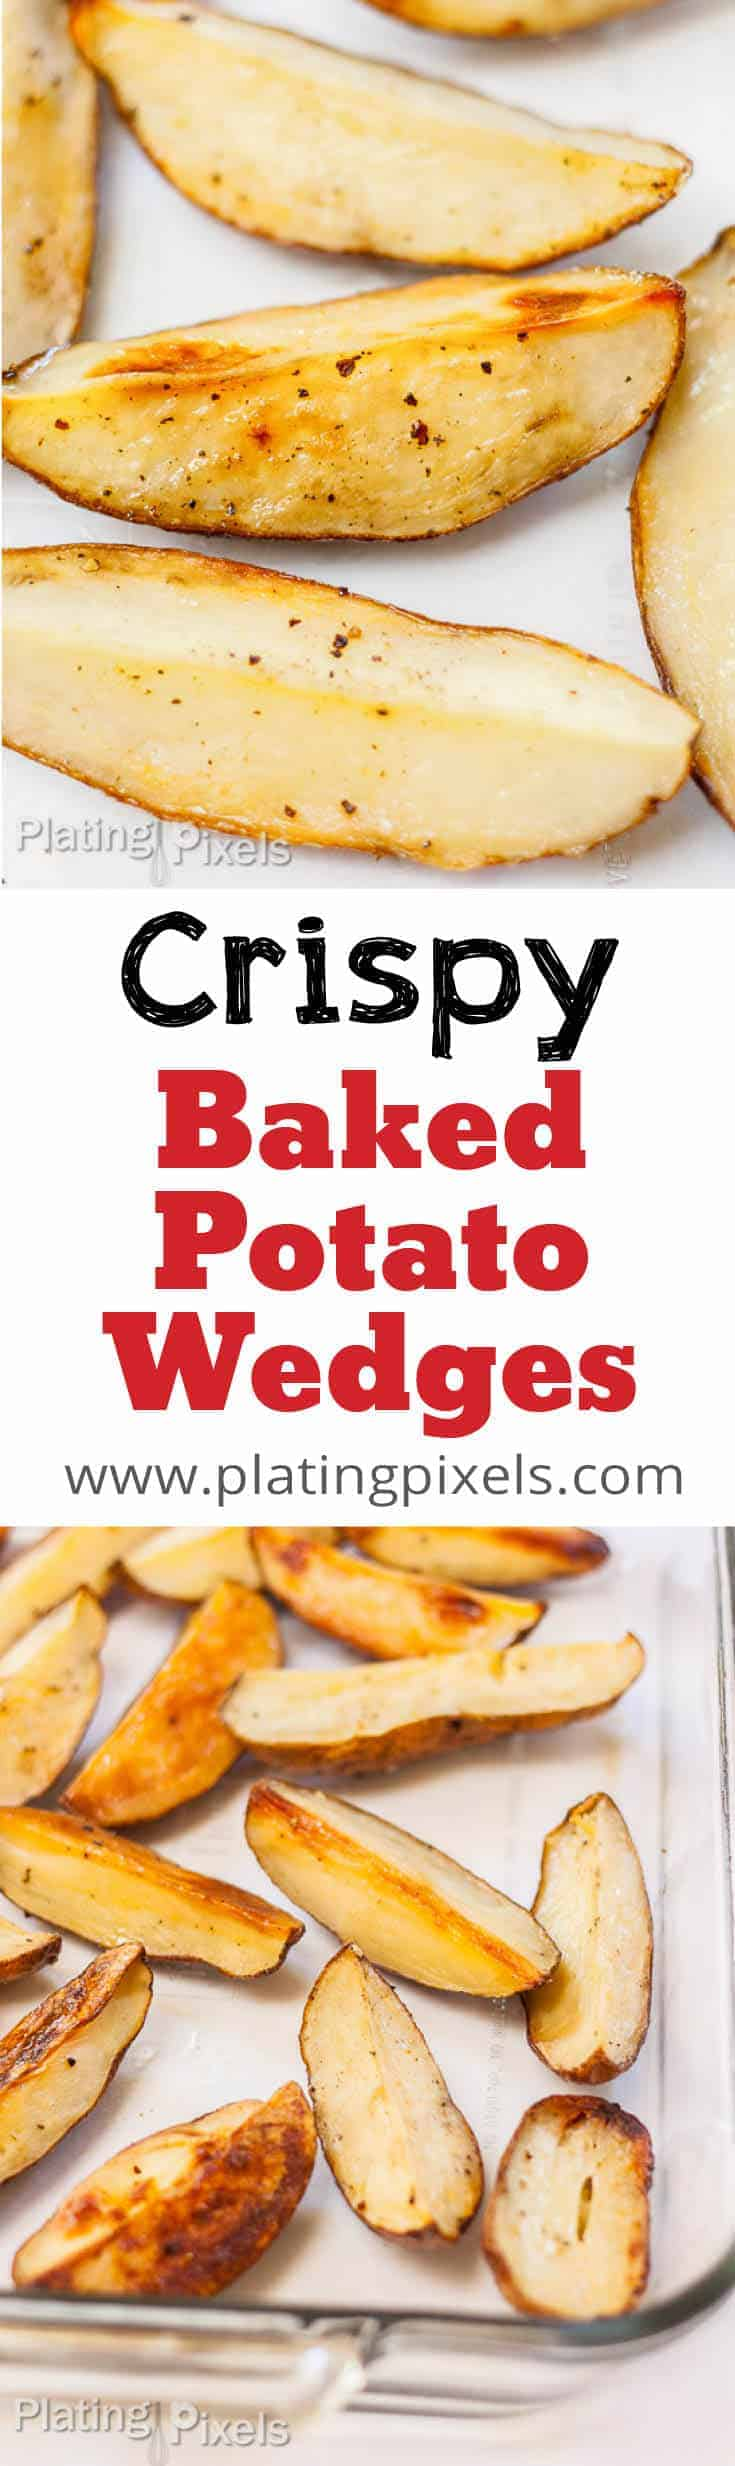 How to Bake Potato Wedges - Crispy Roasted Potato Wedges - www.platingpixels.com